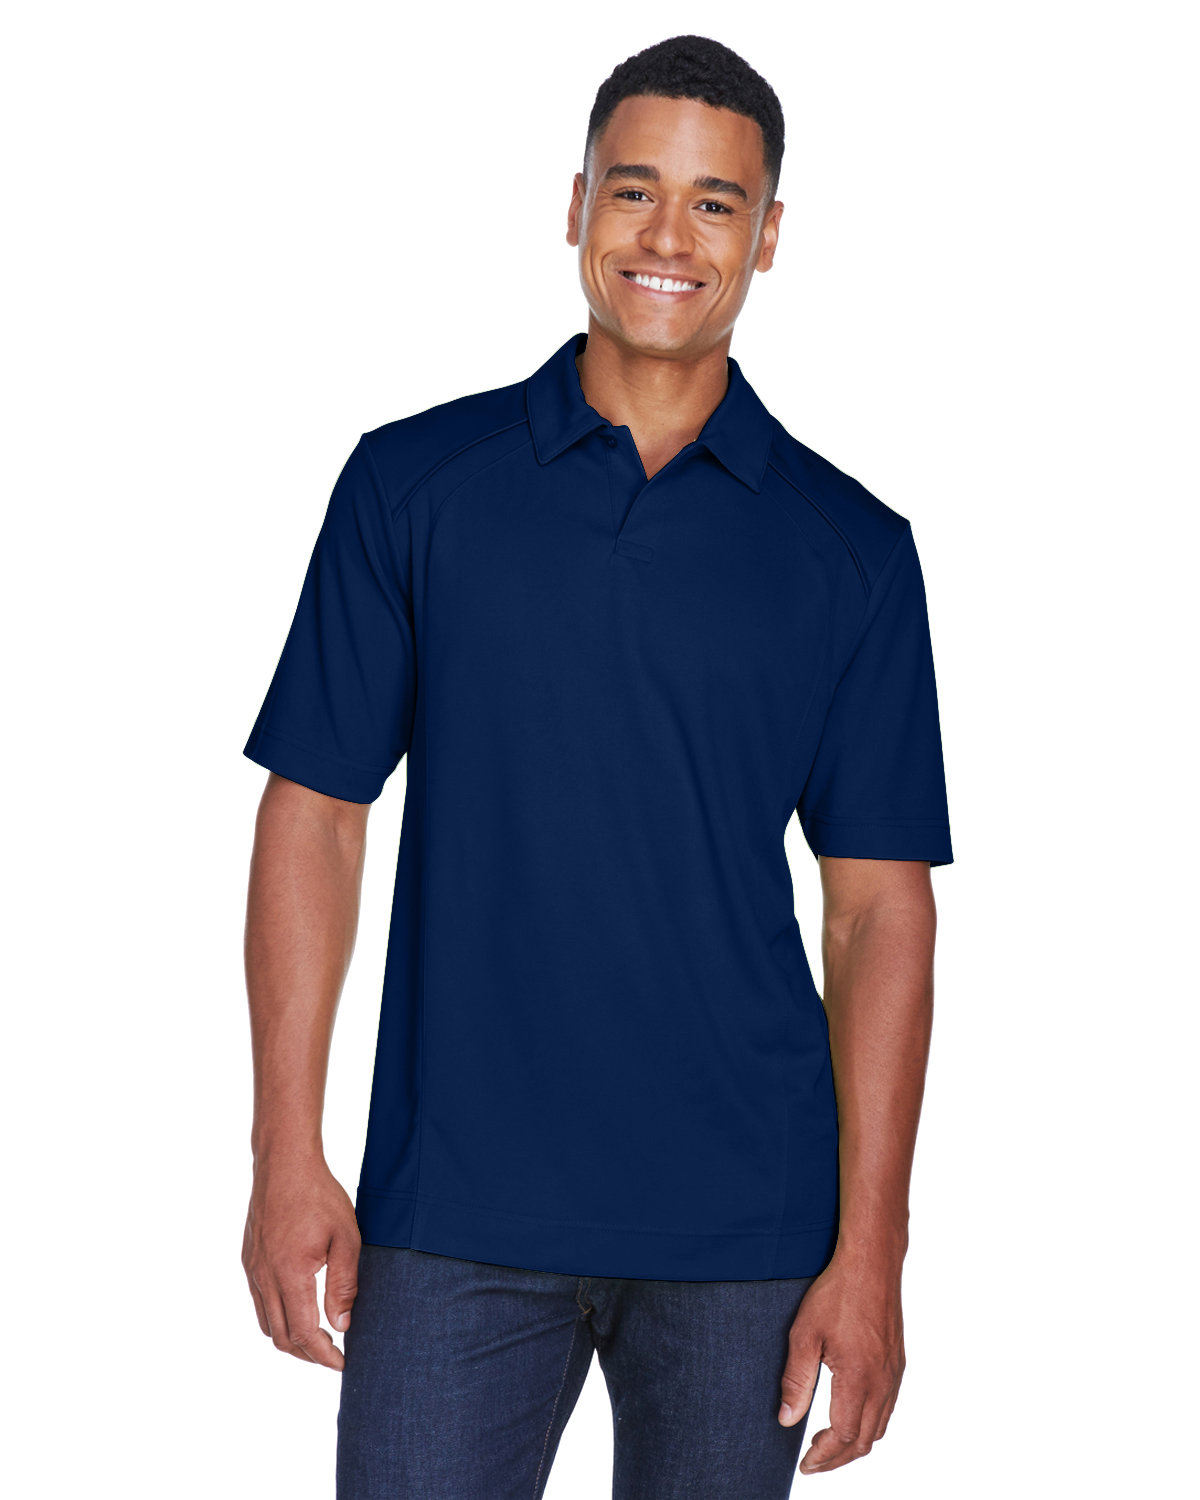 North End Men's Recycled Polyester Performance Piqué Polo NIGHT